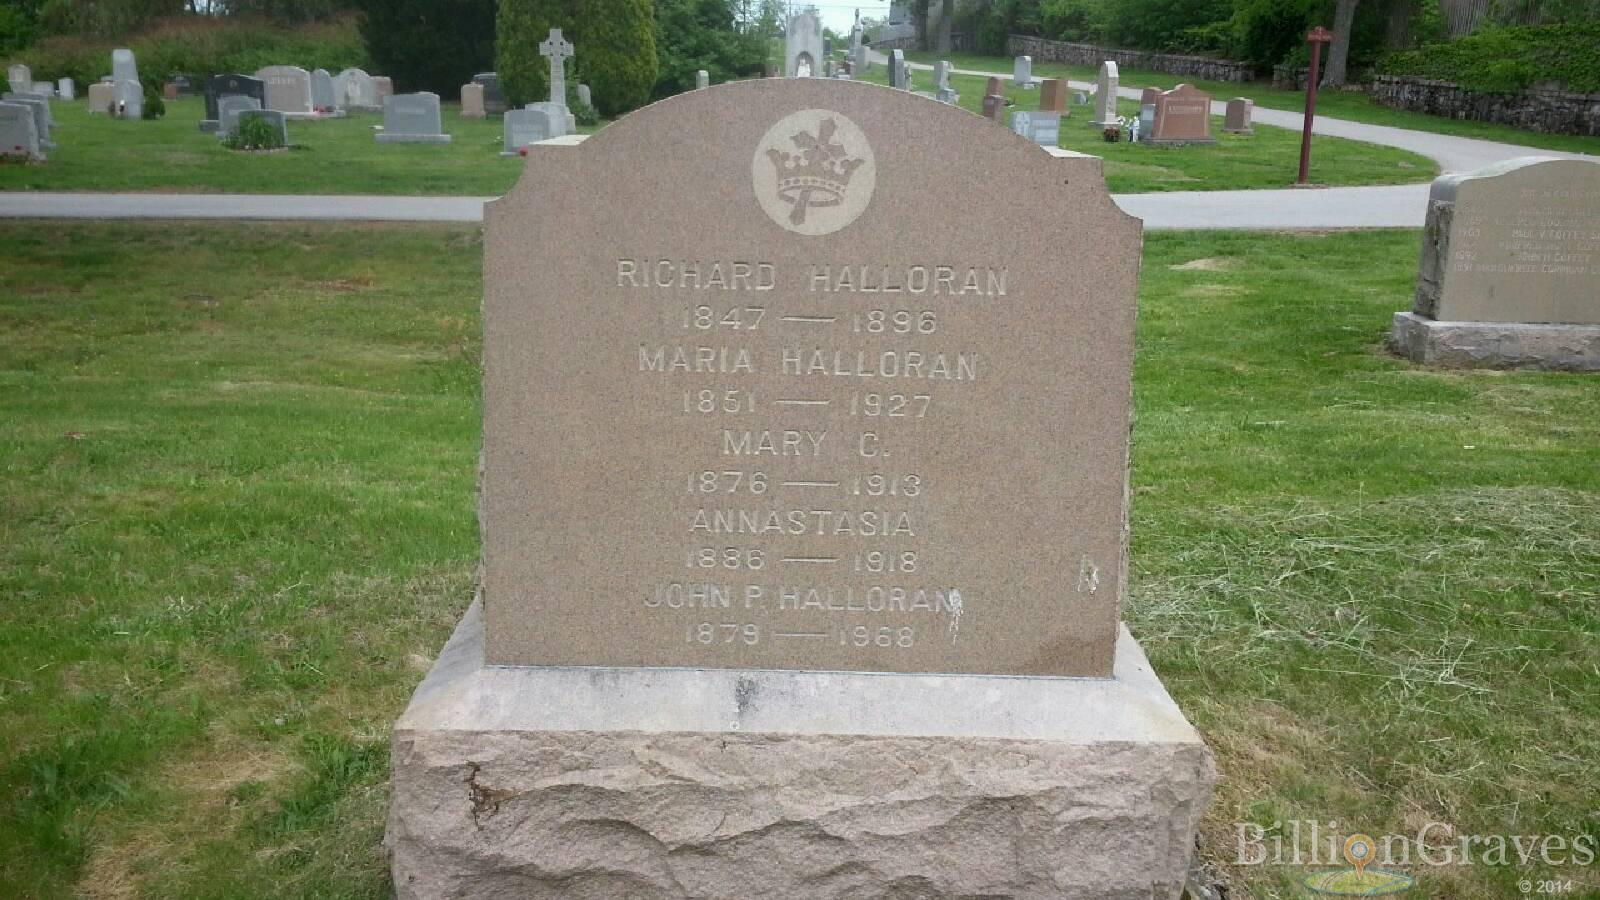 grave site of richard halloran billiongraves headstone image of richard halloran